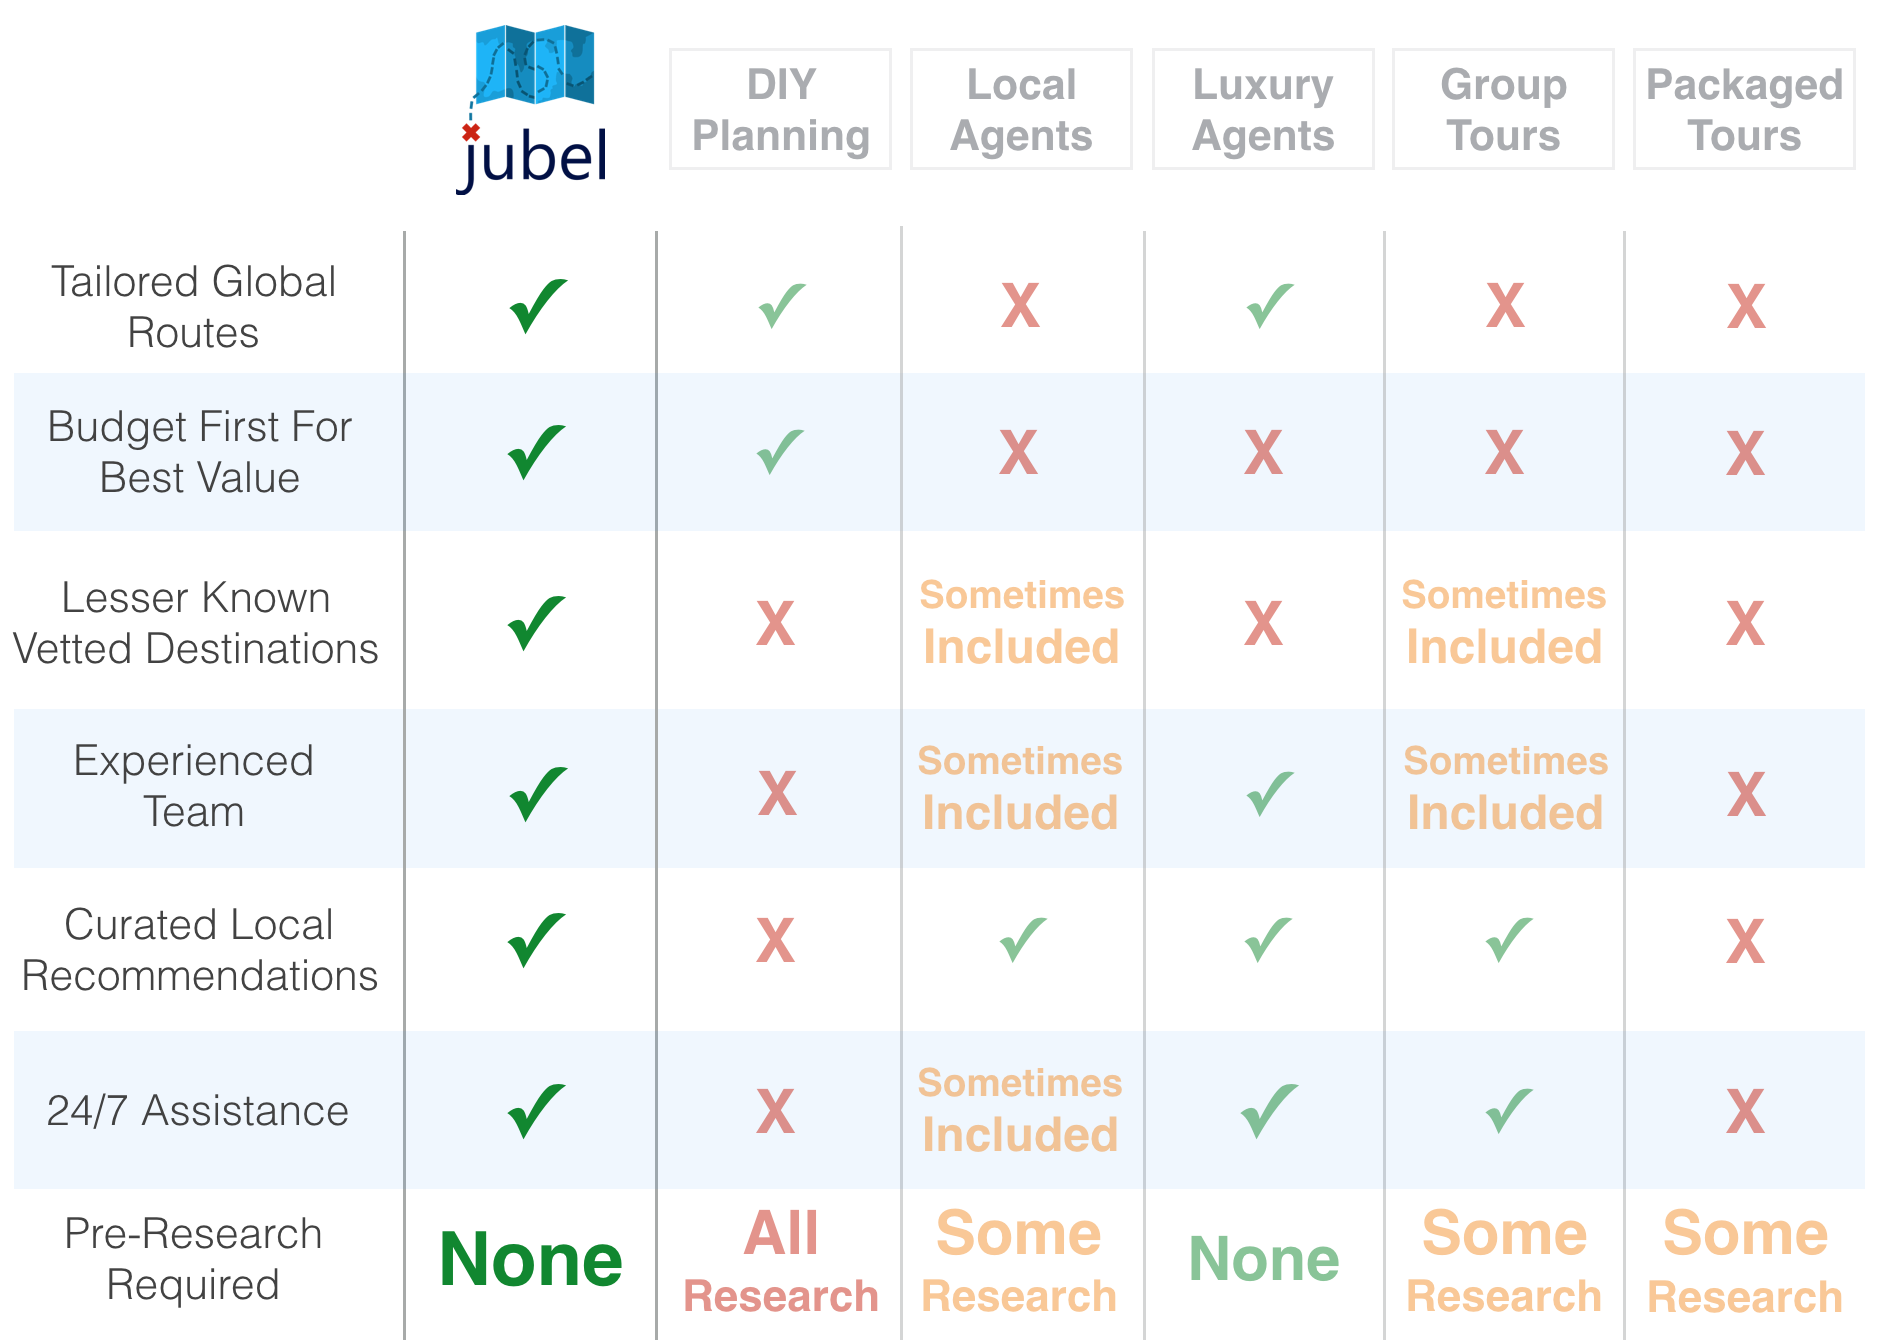 Why Jubel Is Better Than Other Travel Companies